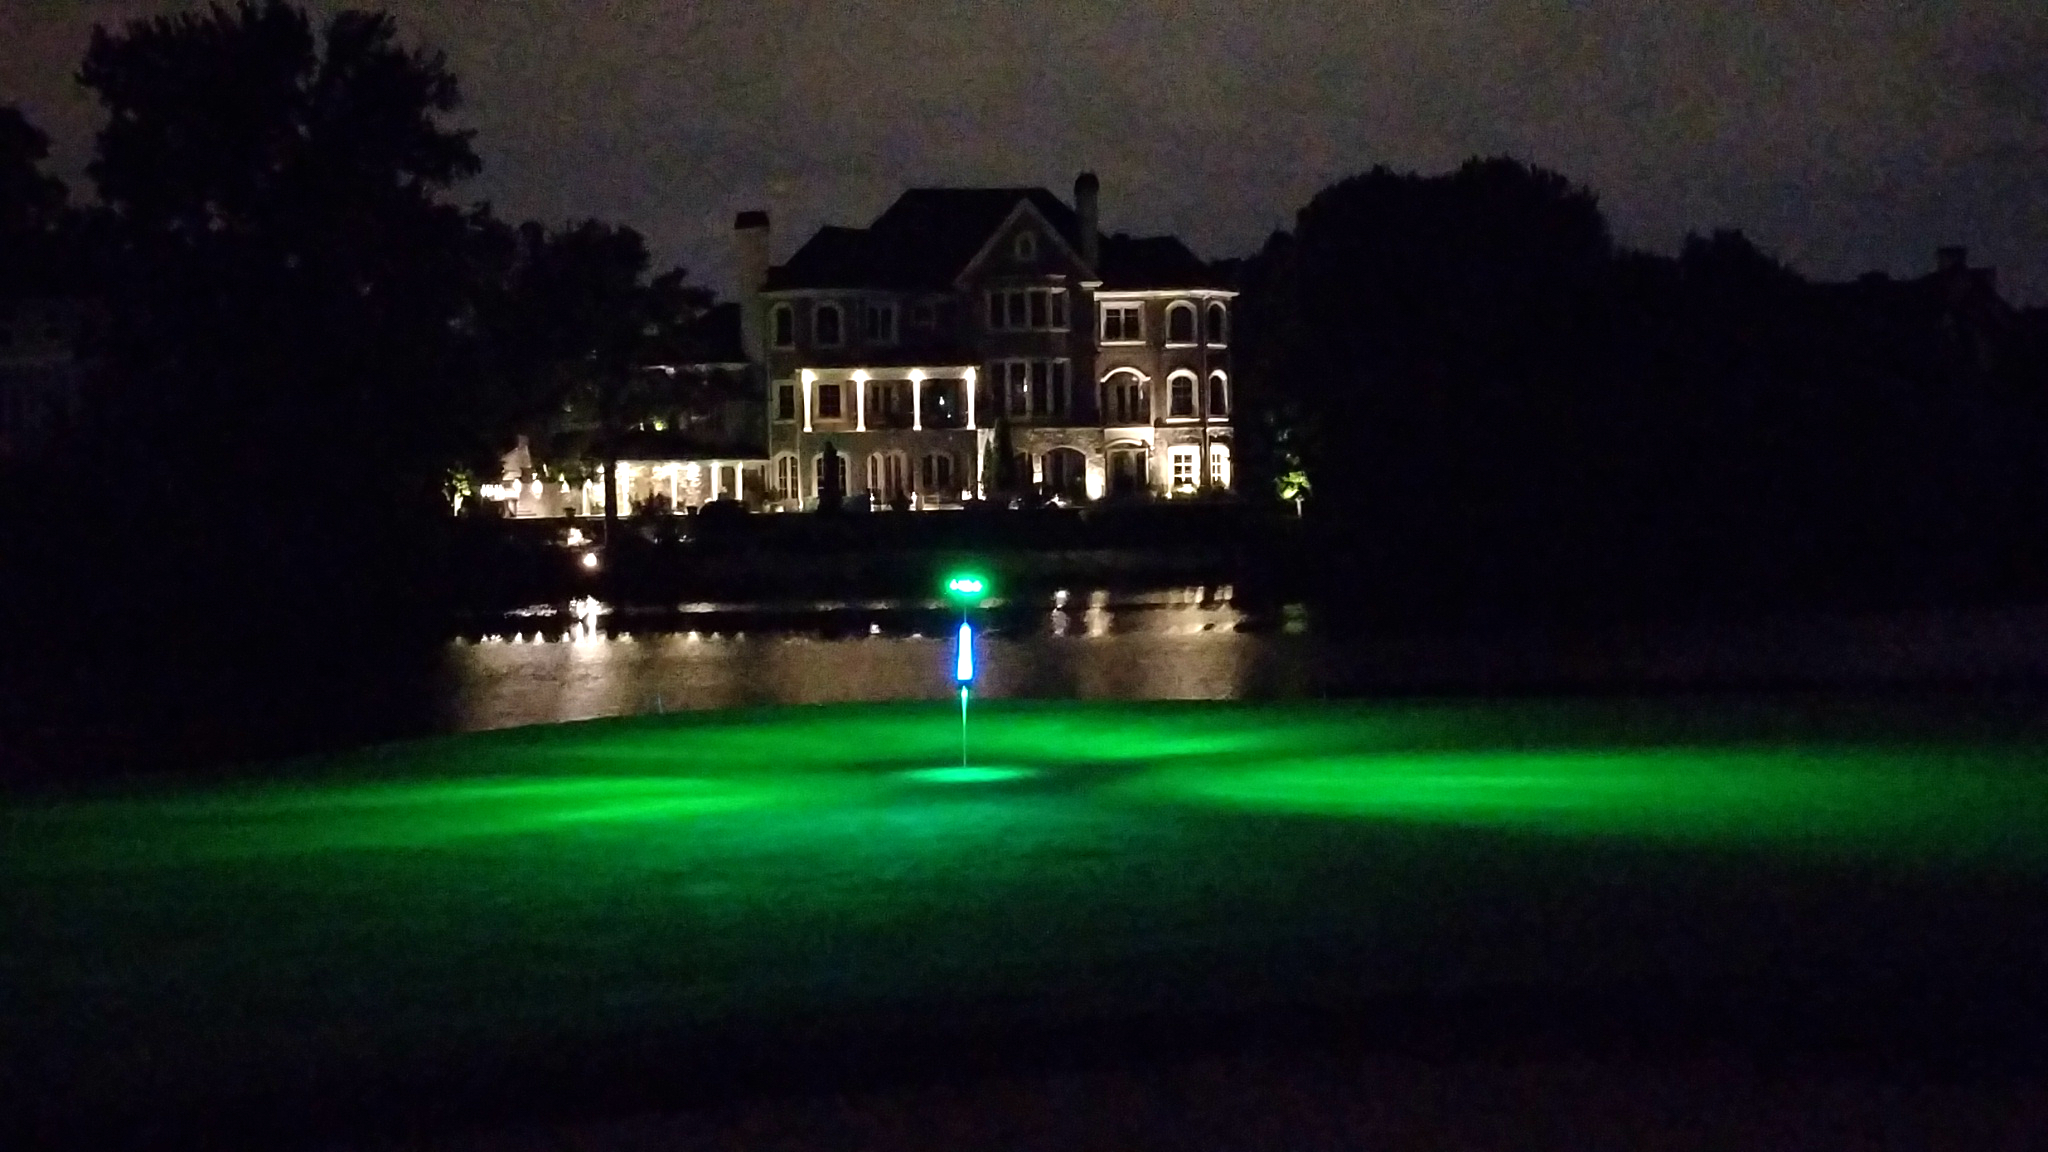 These are golf lights for putting greens